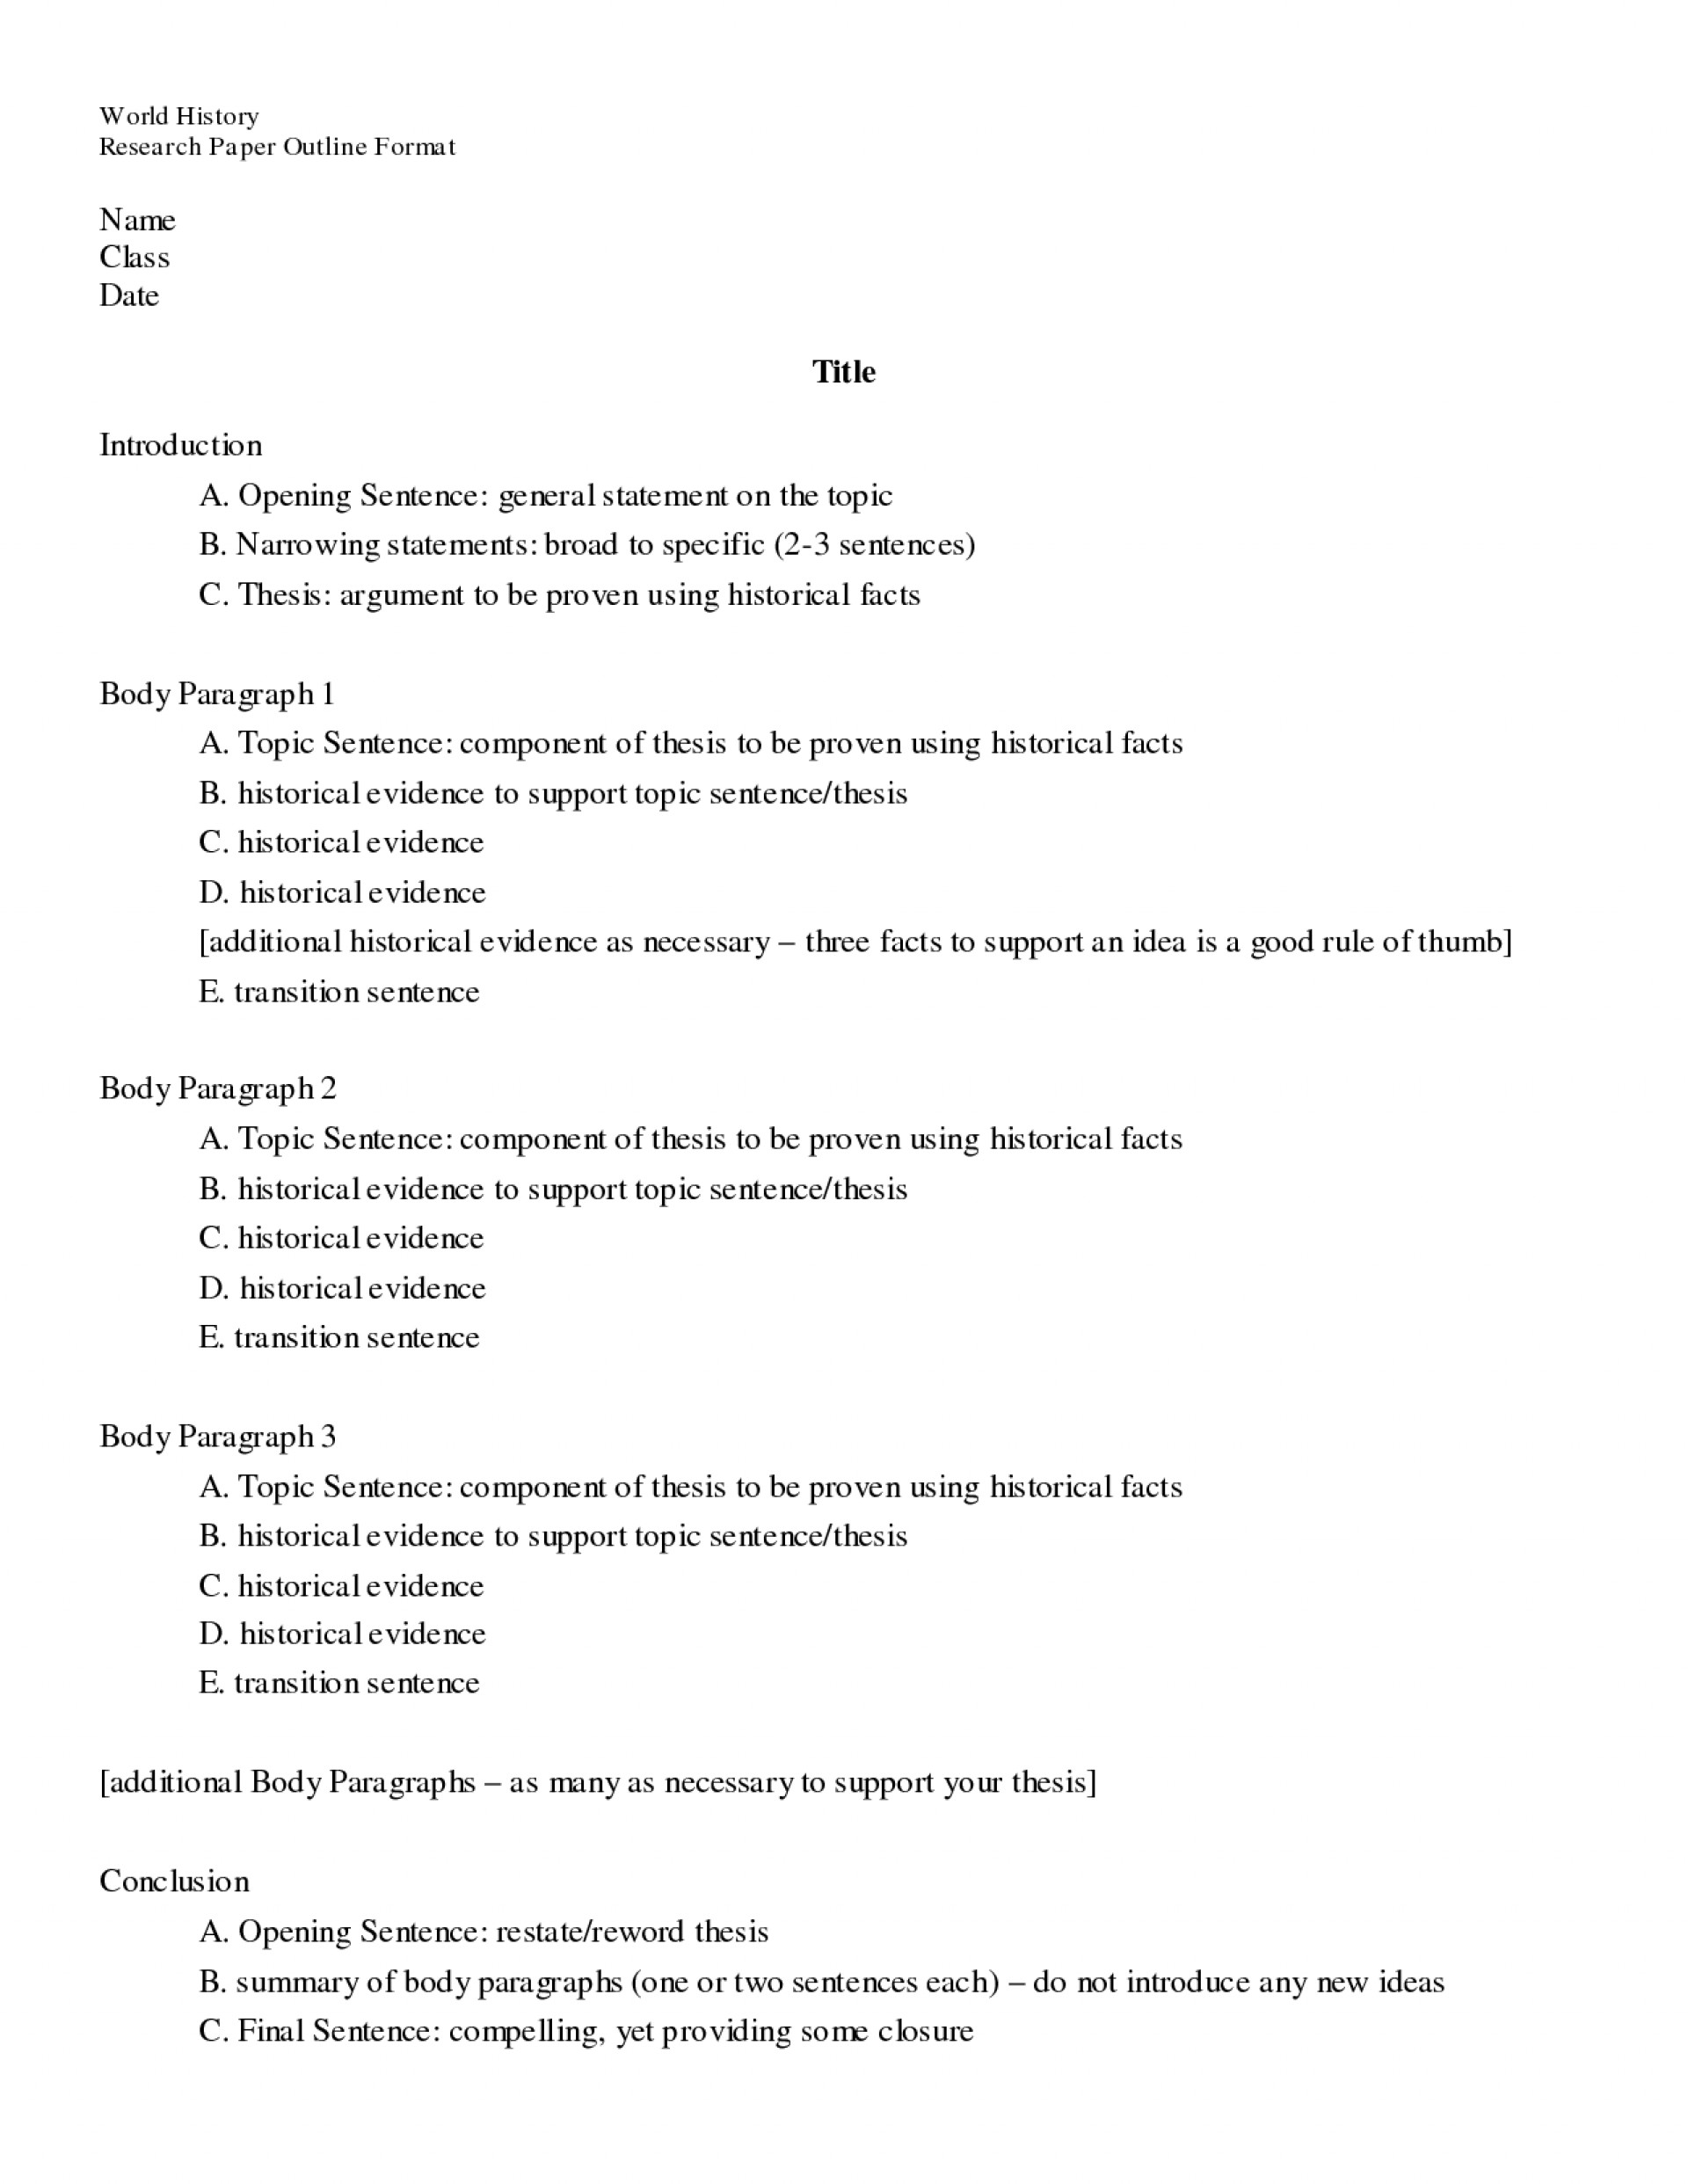 008 Research Paper Basic Imposing Outline Simple Easy 1920